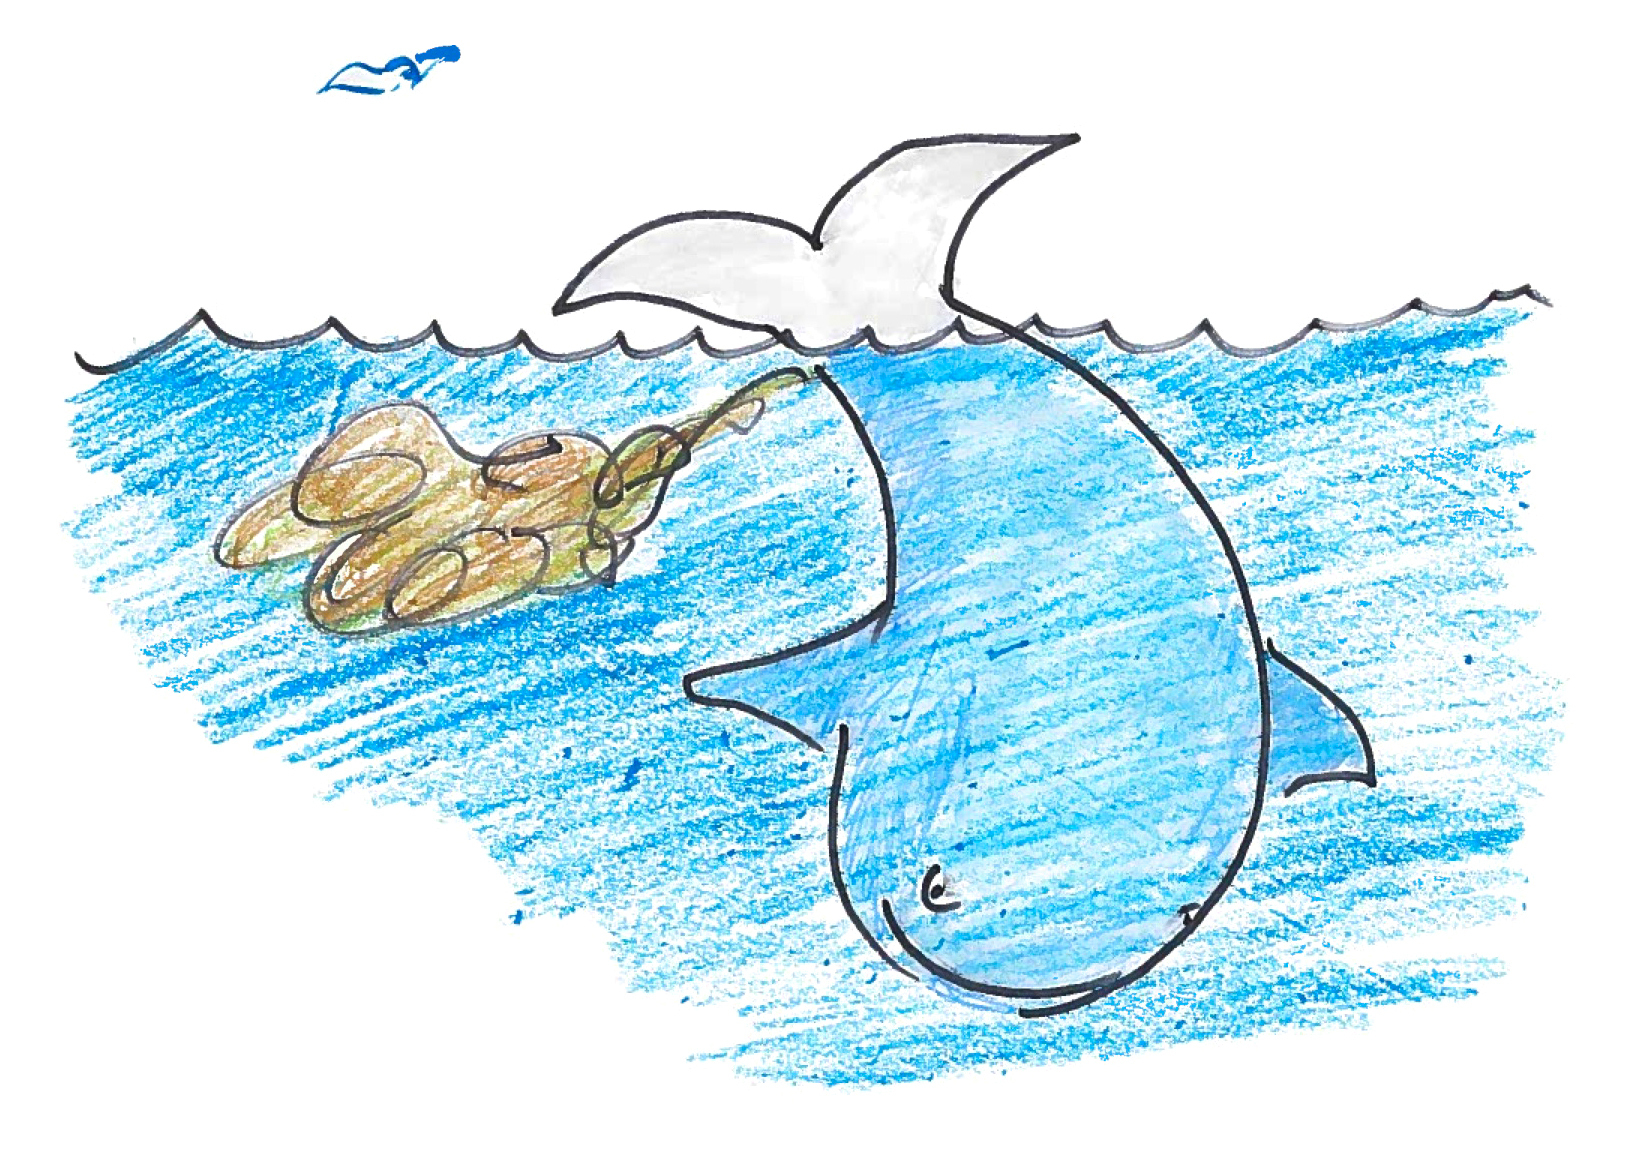 The Power Of Poop: A Whale Story